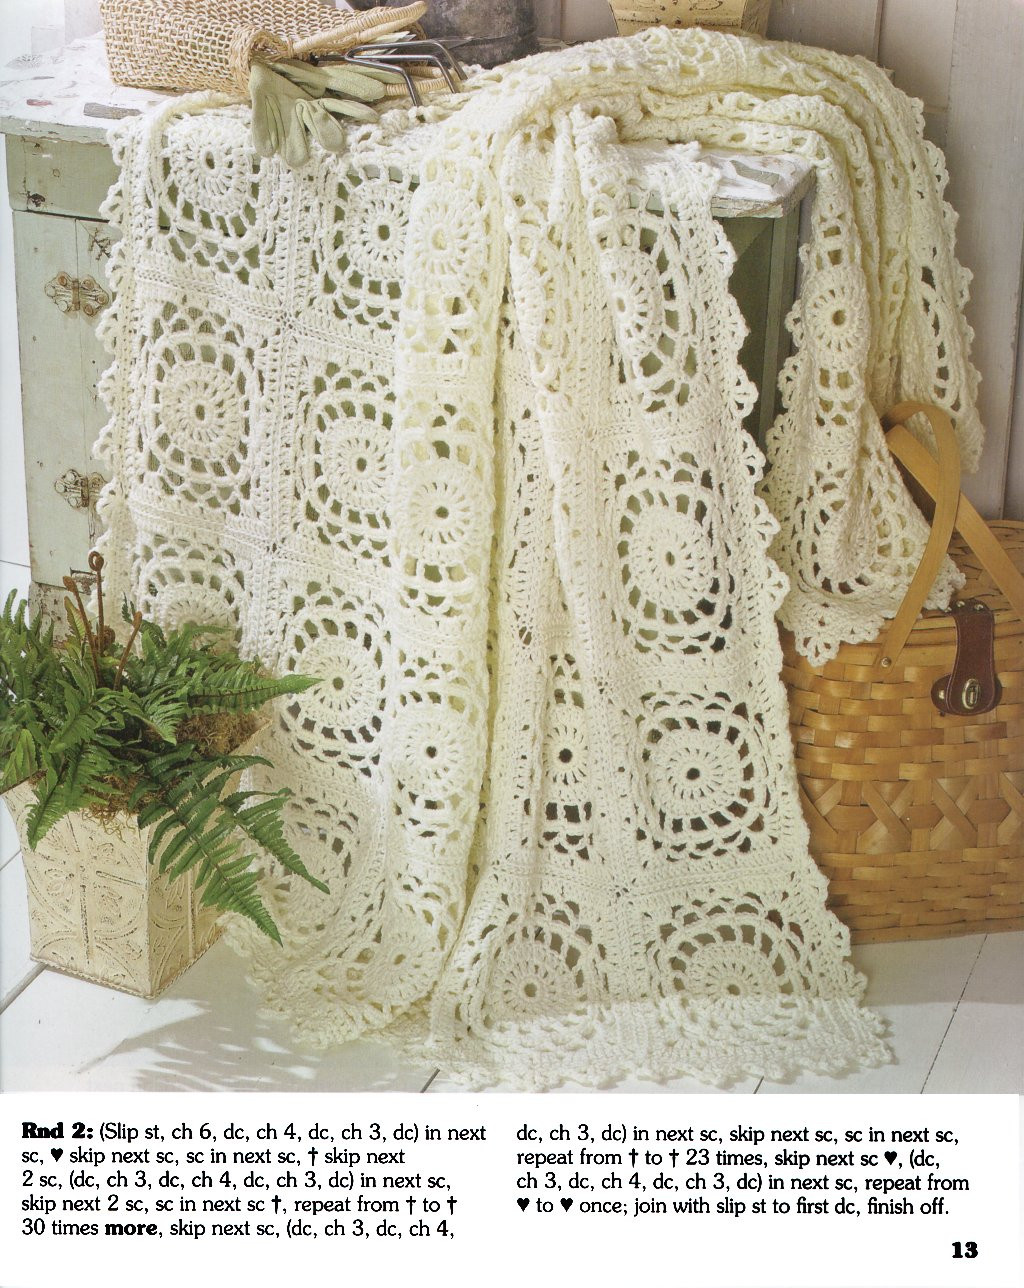 New Lacy Square Crochet Afghan Pattern ⋆ Crochet Kingdom Crochet Kingdom Of Gorgeous 50 Pictures Crochet Kingdom